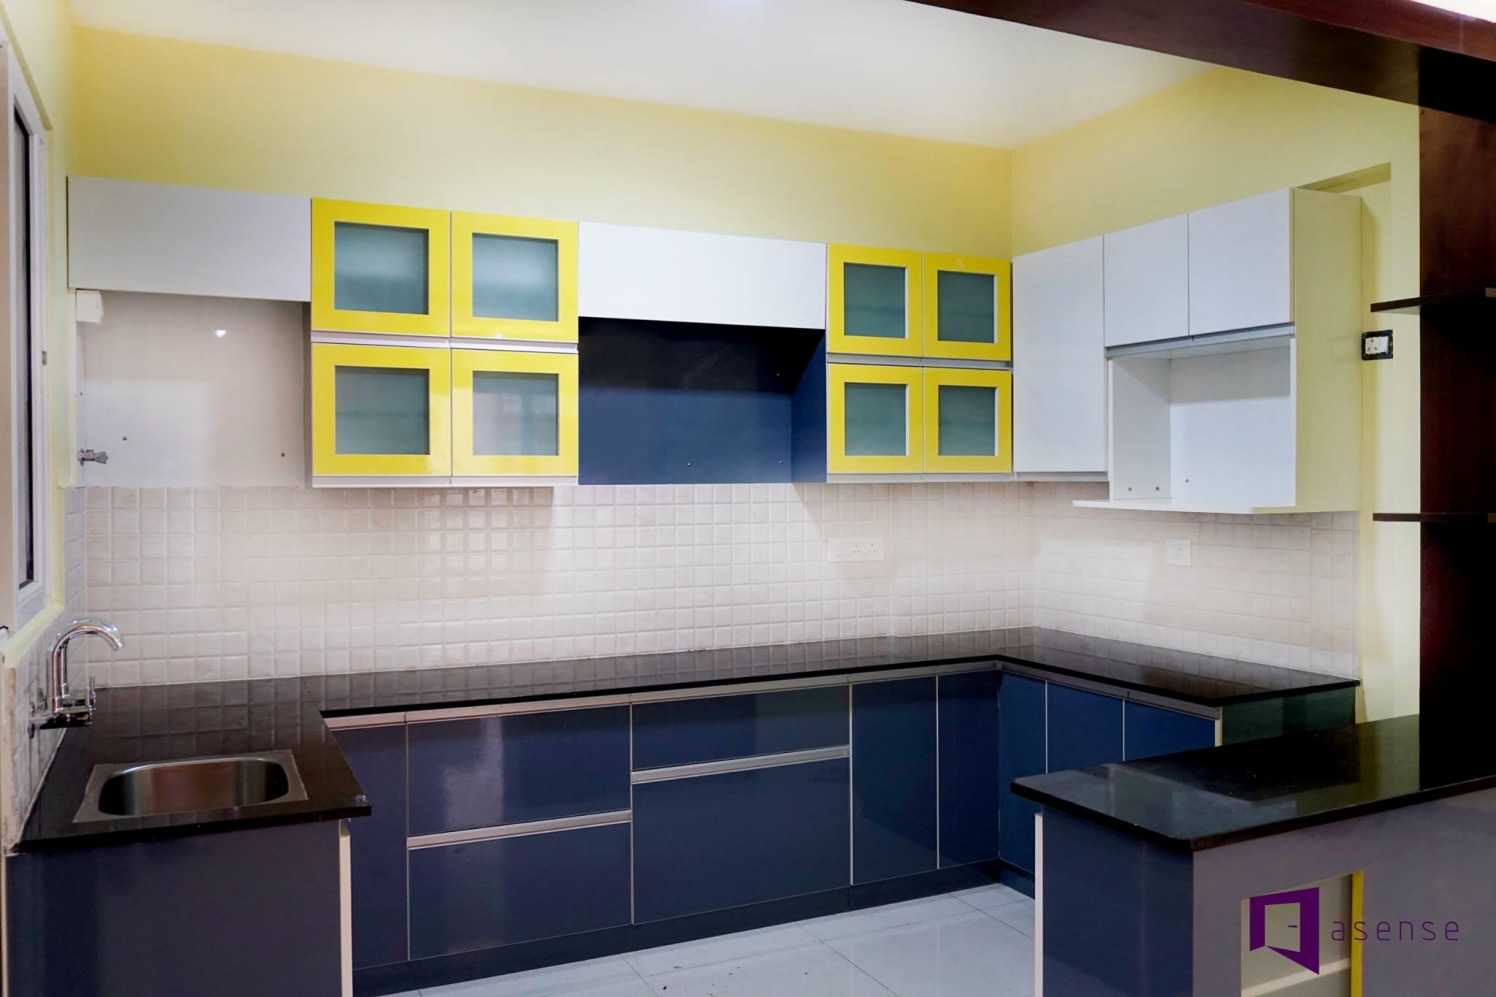 Blue And Yellow U Shaped Modular Kitchen by Snigdha Ghosh Modular-kitchen Contemporary | Interior Design Photos & Ideas